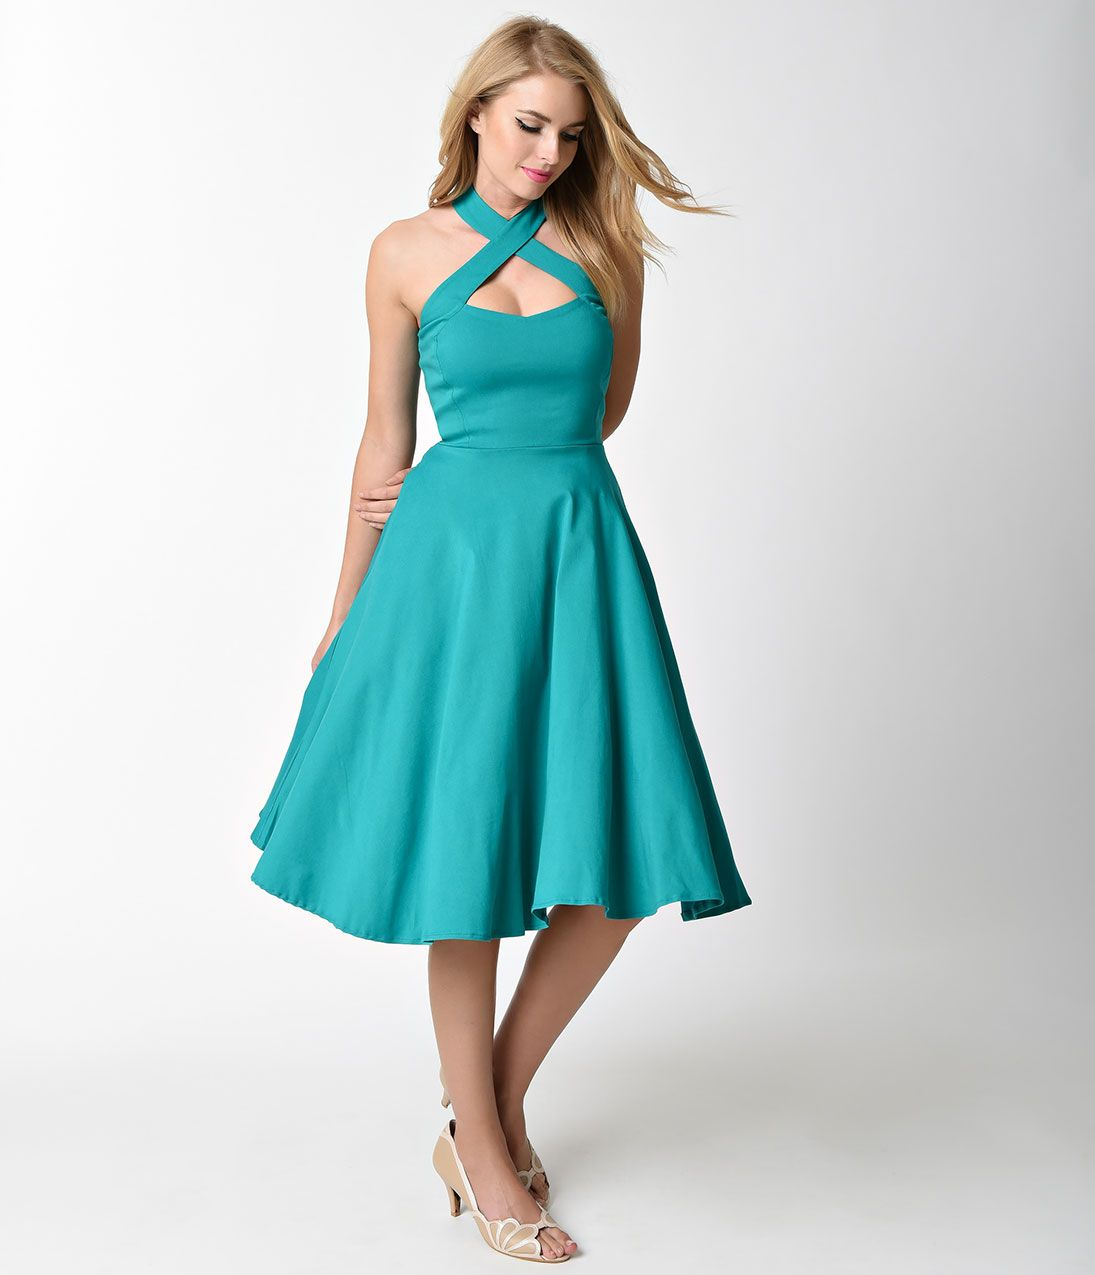 Vintage Style Dresses: 30s, 40s, 50s, and 60s   1950s style and 1950s